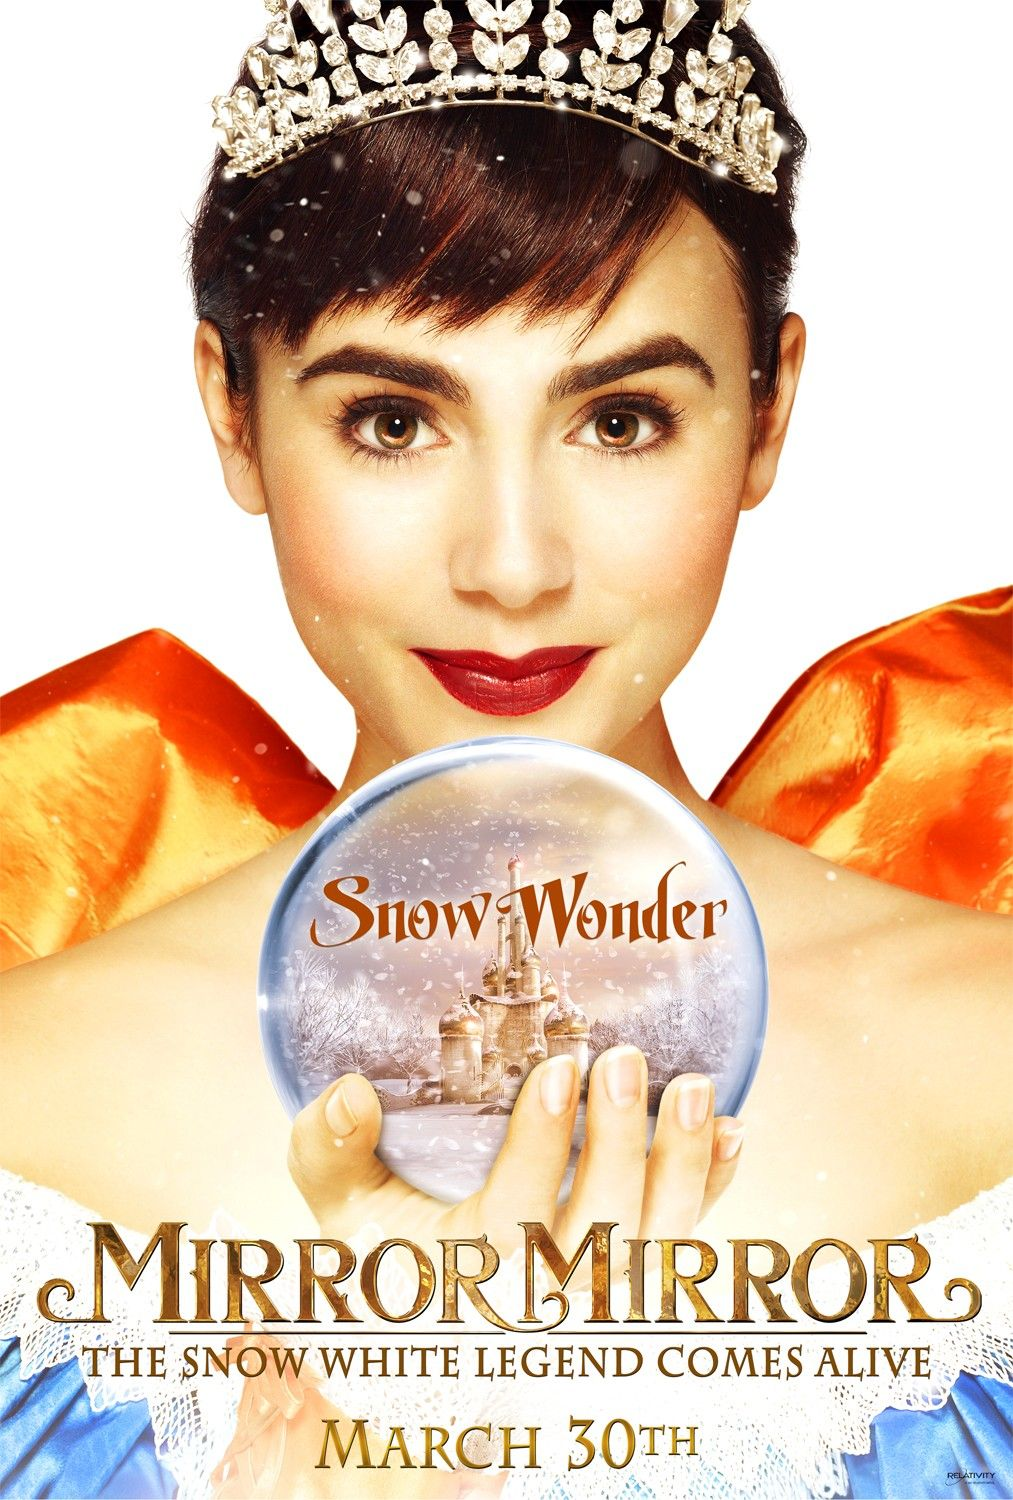 Mirror mirror sometimes plot feels very intended for kids but mirror mirror movie featuring julia roberts as the evil queen and new star lily collins from the blind side as snow white the movie can amipublicfo Choice Image